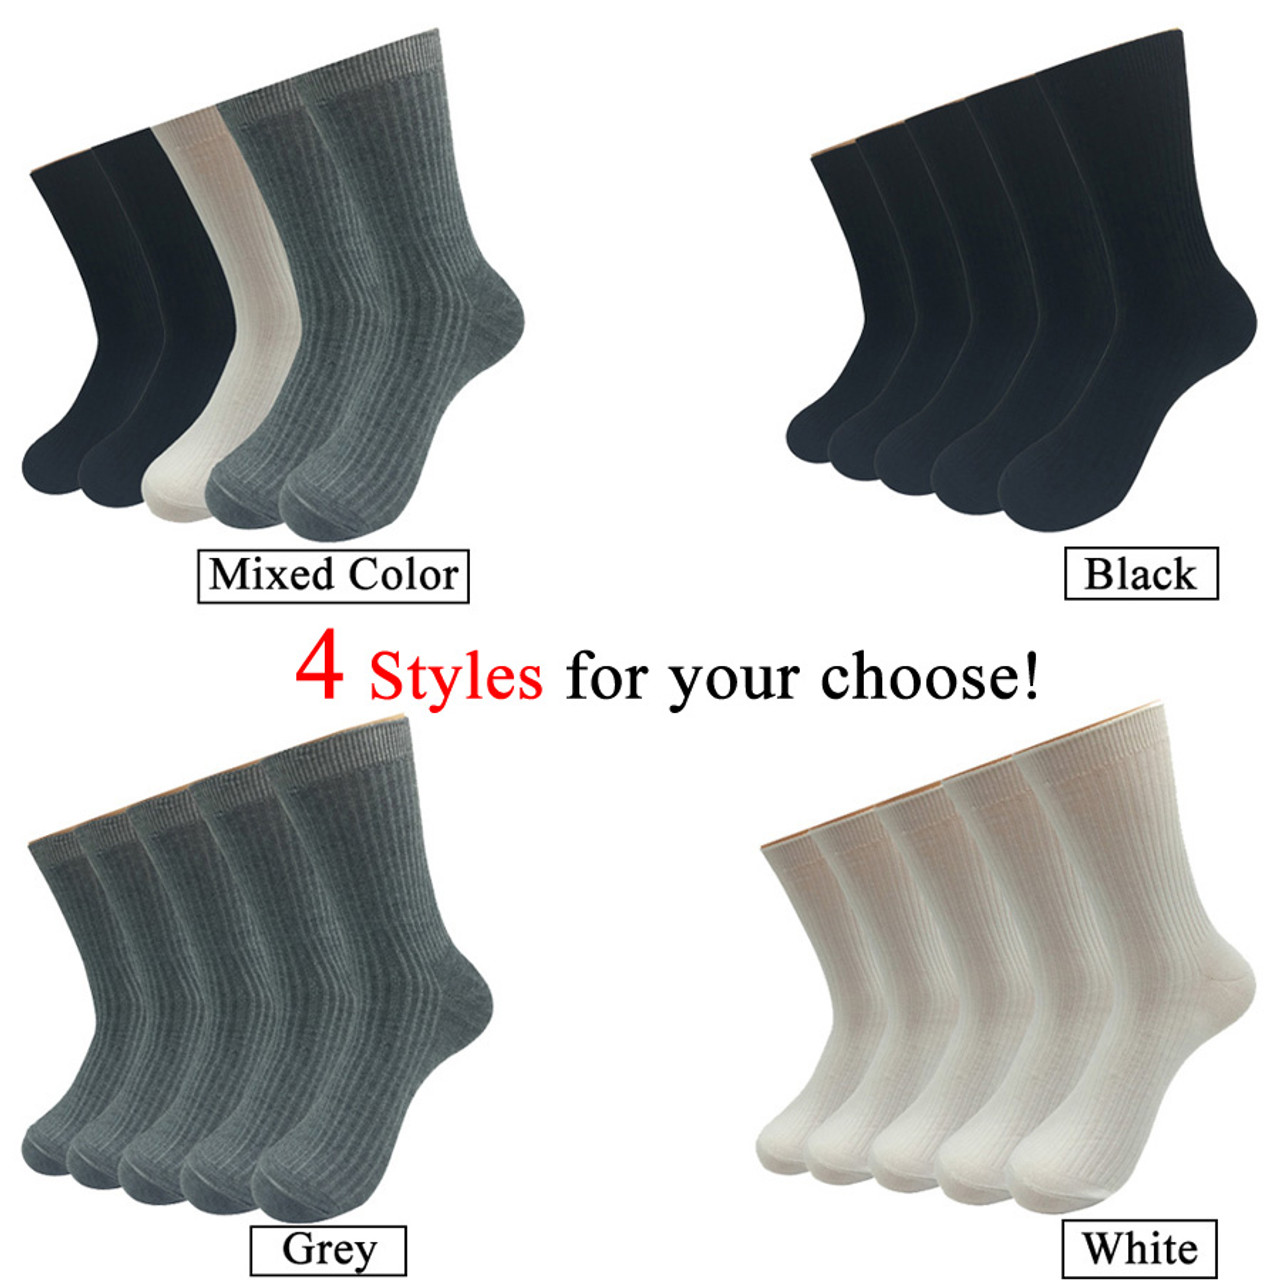 5 Pairs//Lot Black Women Cotton Short Ankle Boat Sports Socks with White Spots